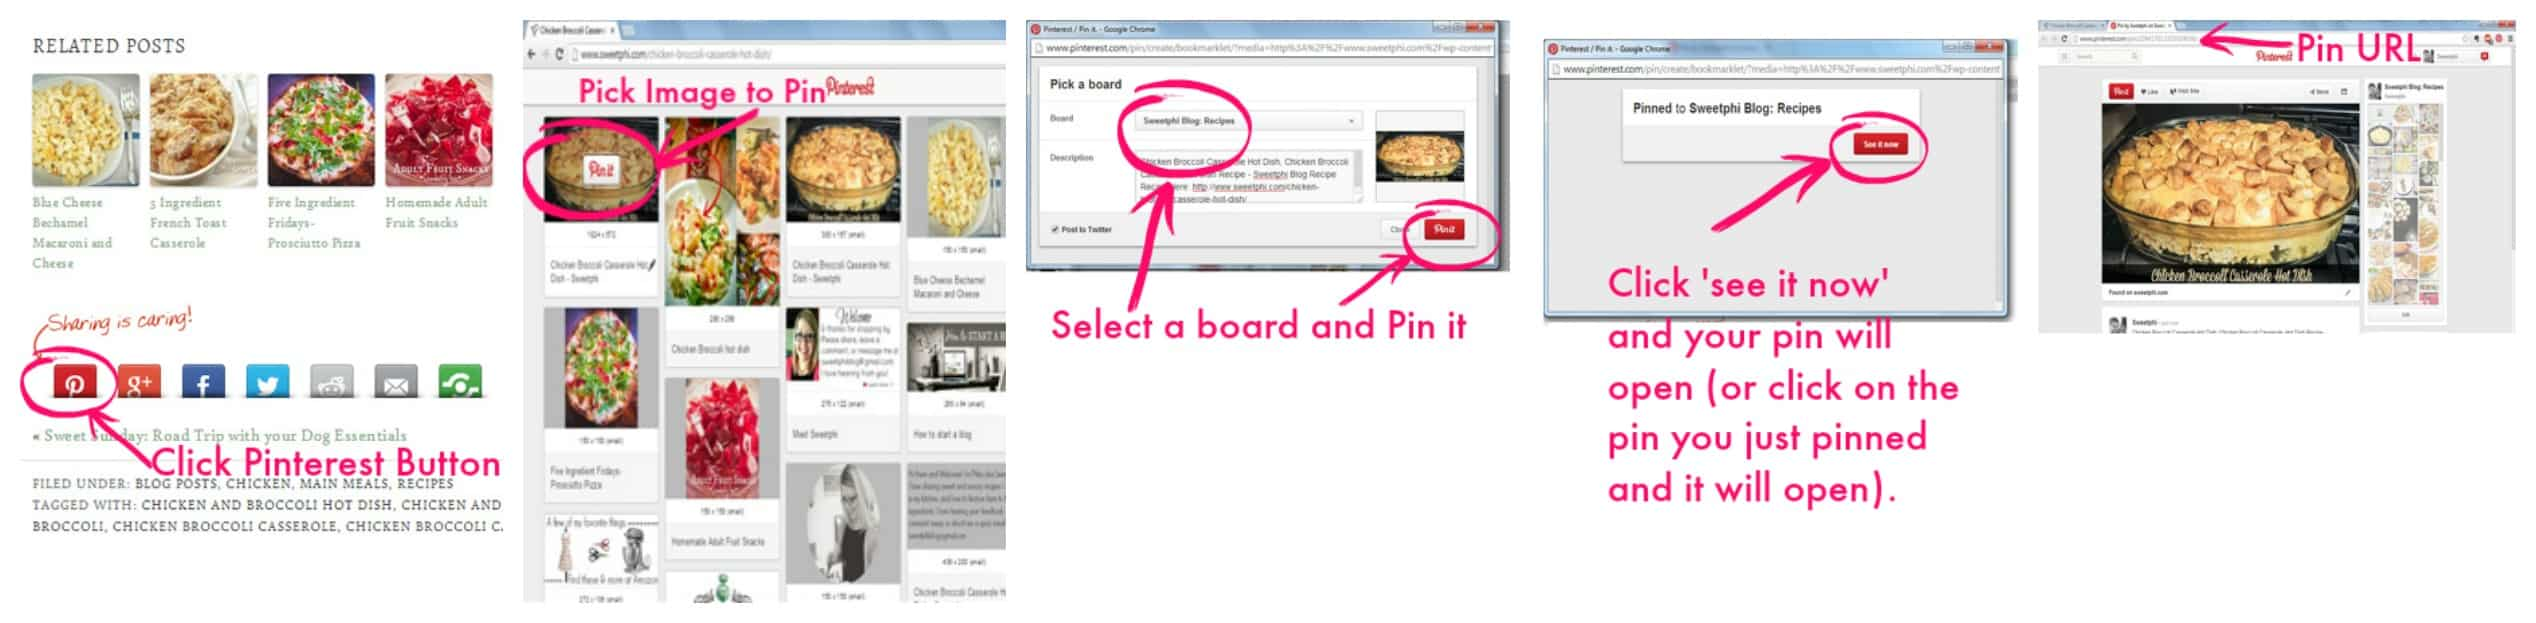 How to find a pin url